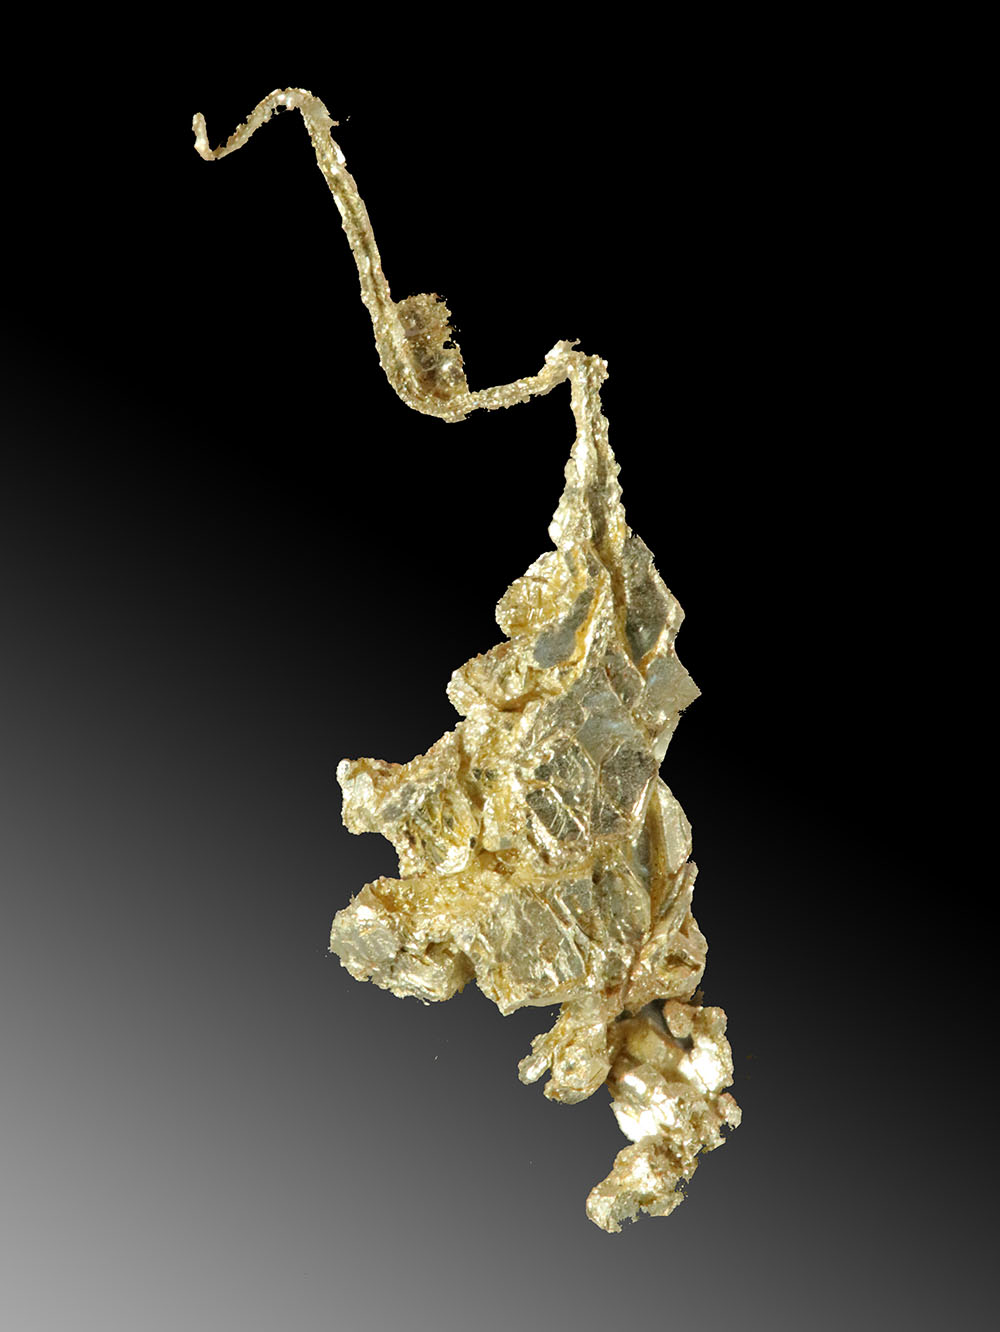 Brilliant Gold Crystal Cluster that Tapers to Fine Leaf Gold